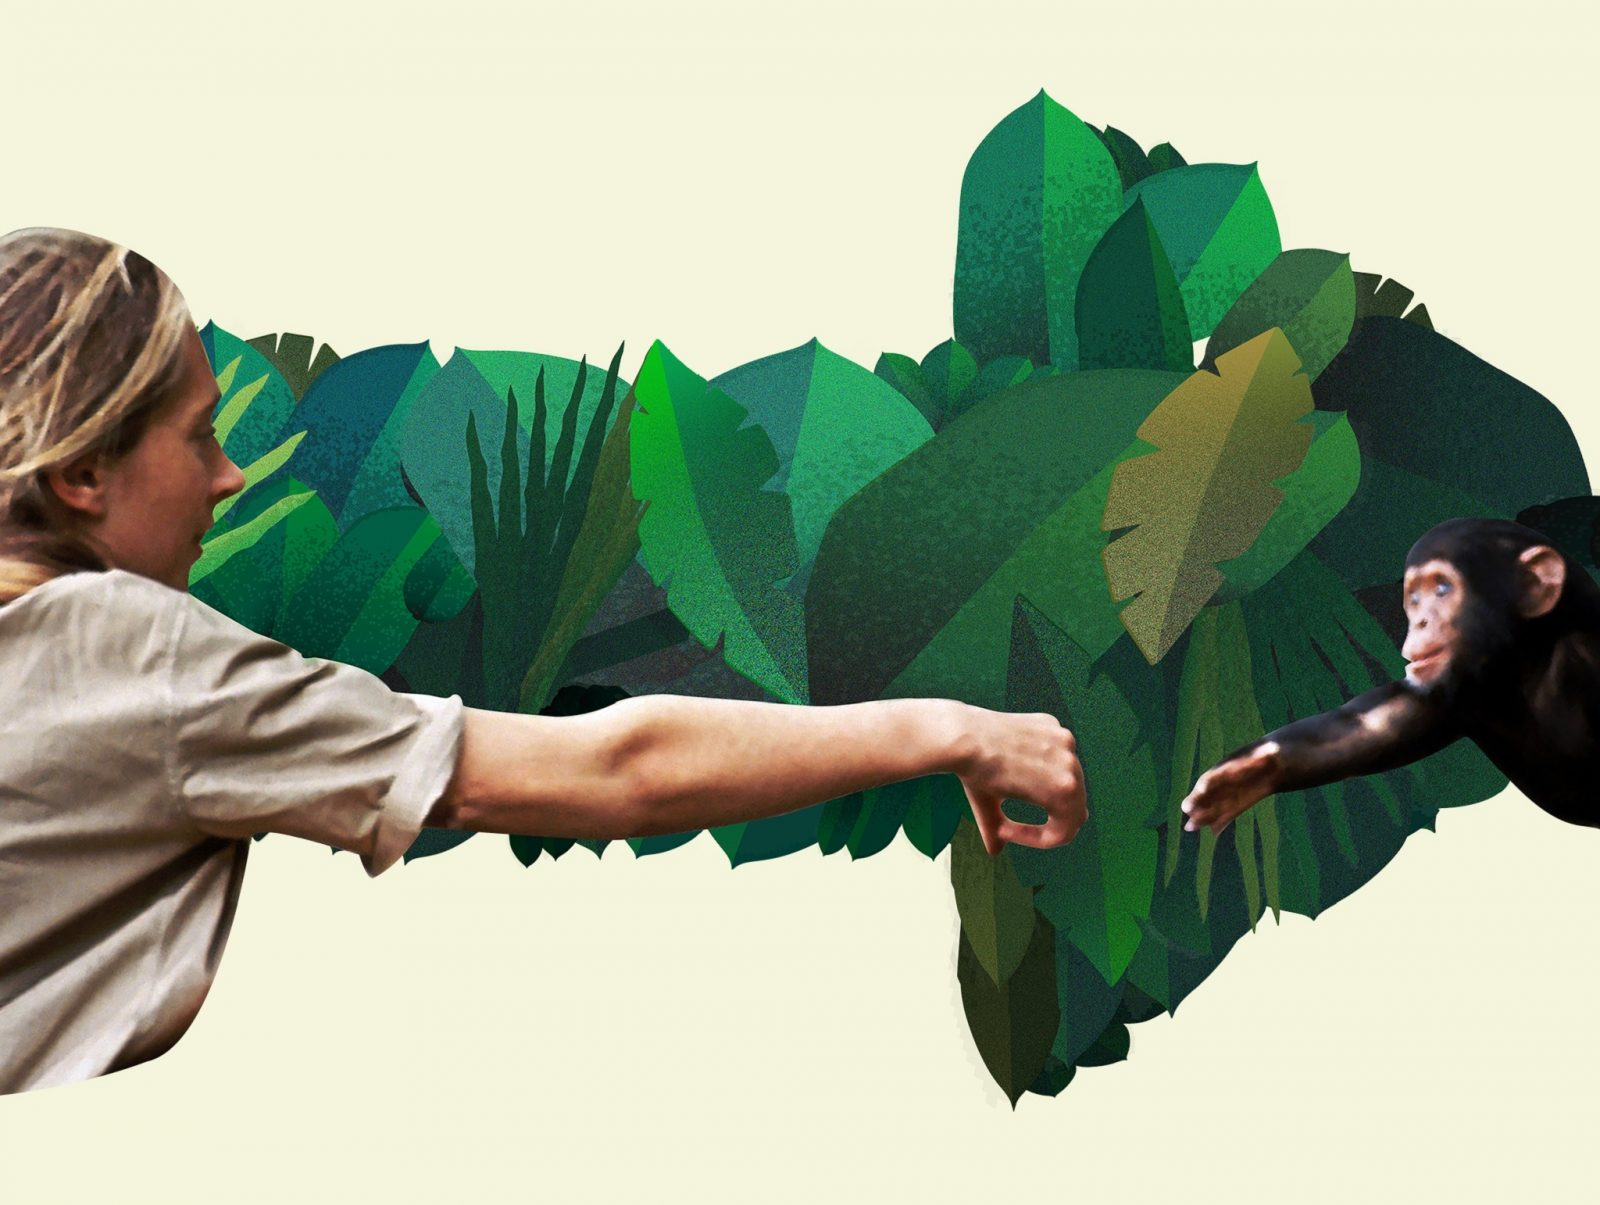 Jane Goodall: Rewind the Future. Jane Goodall reaching out for a tiny chimpanzee.